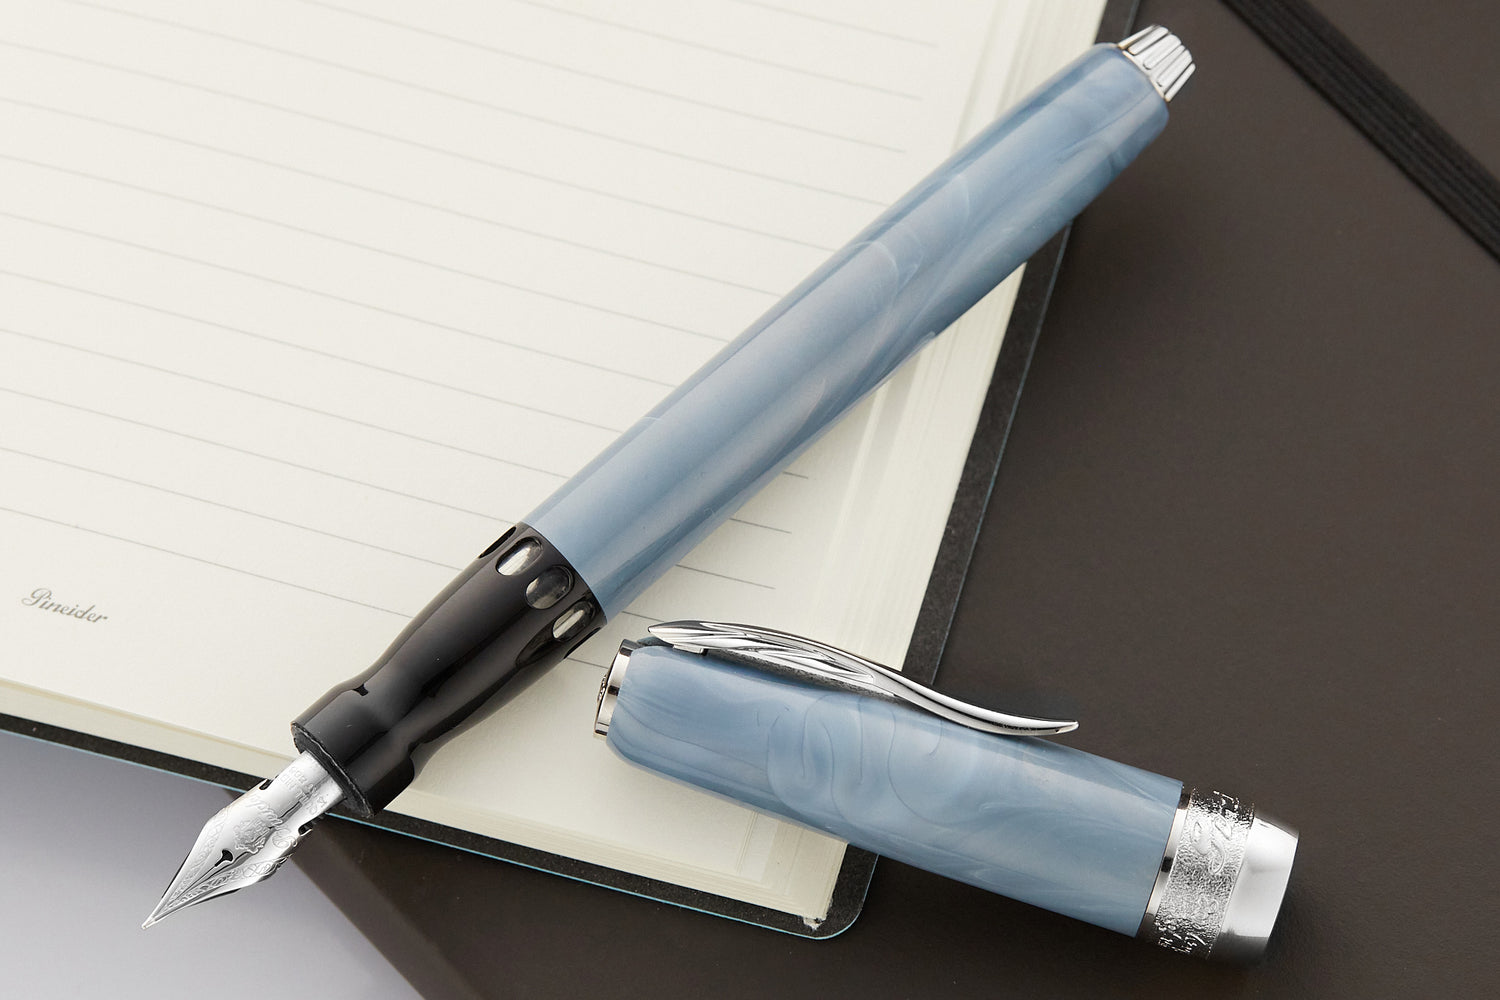 Pineider Full Metal Jacket Fountain Pen - Ash Grey (14kt Piston)